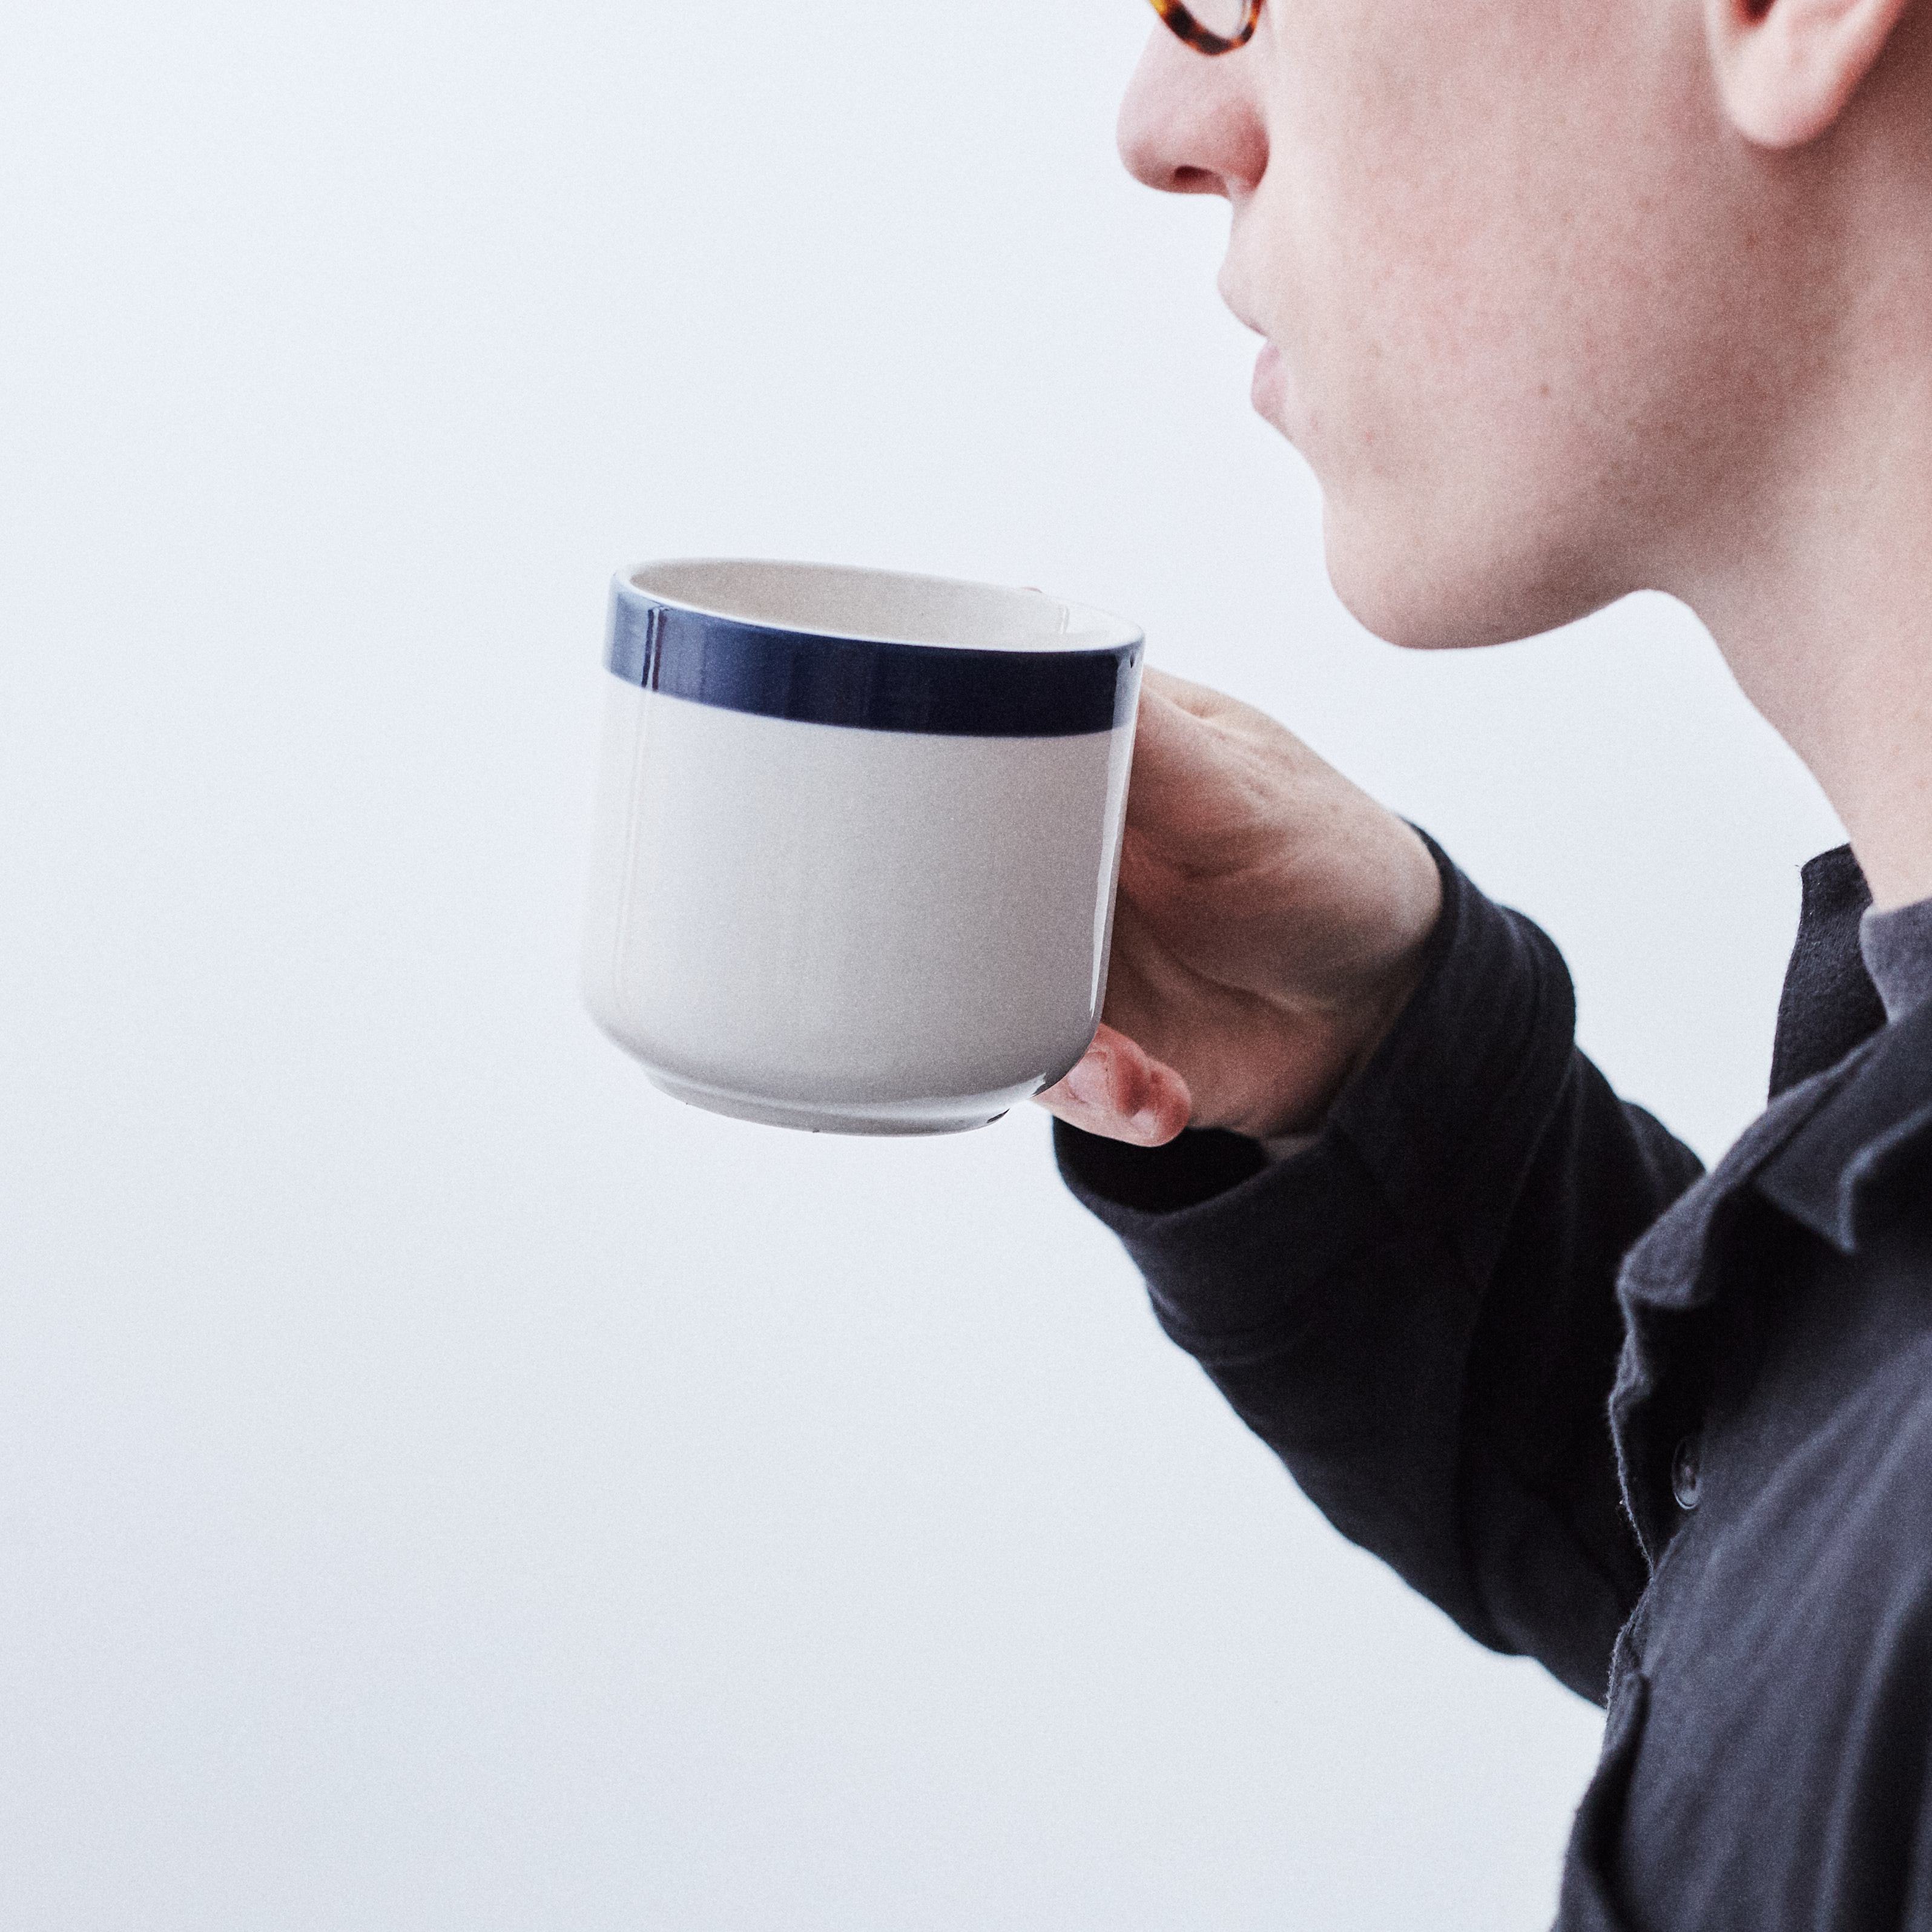 Person sipping coffee from a white mug with blue rim